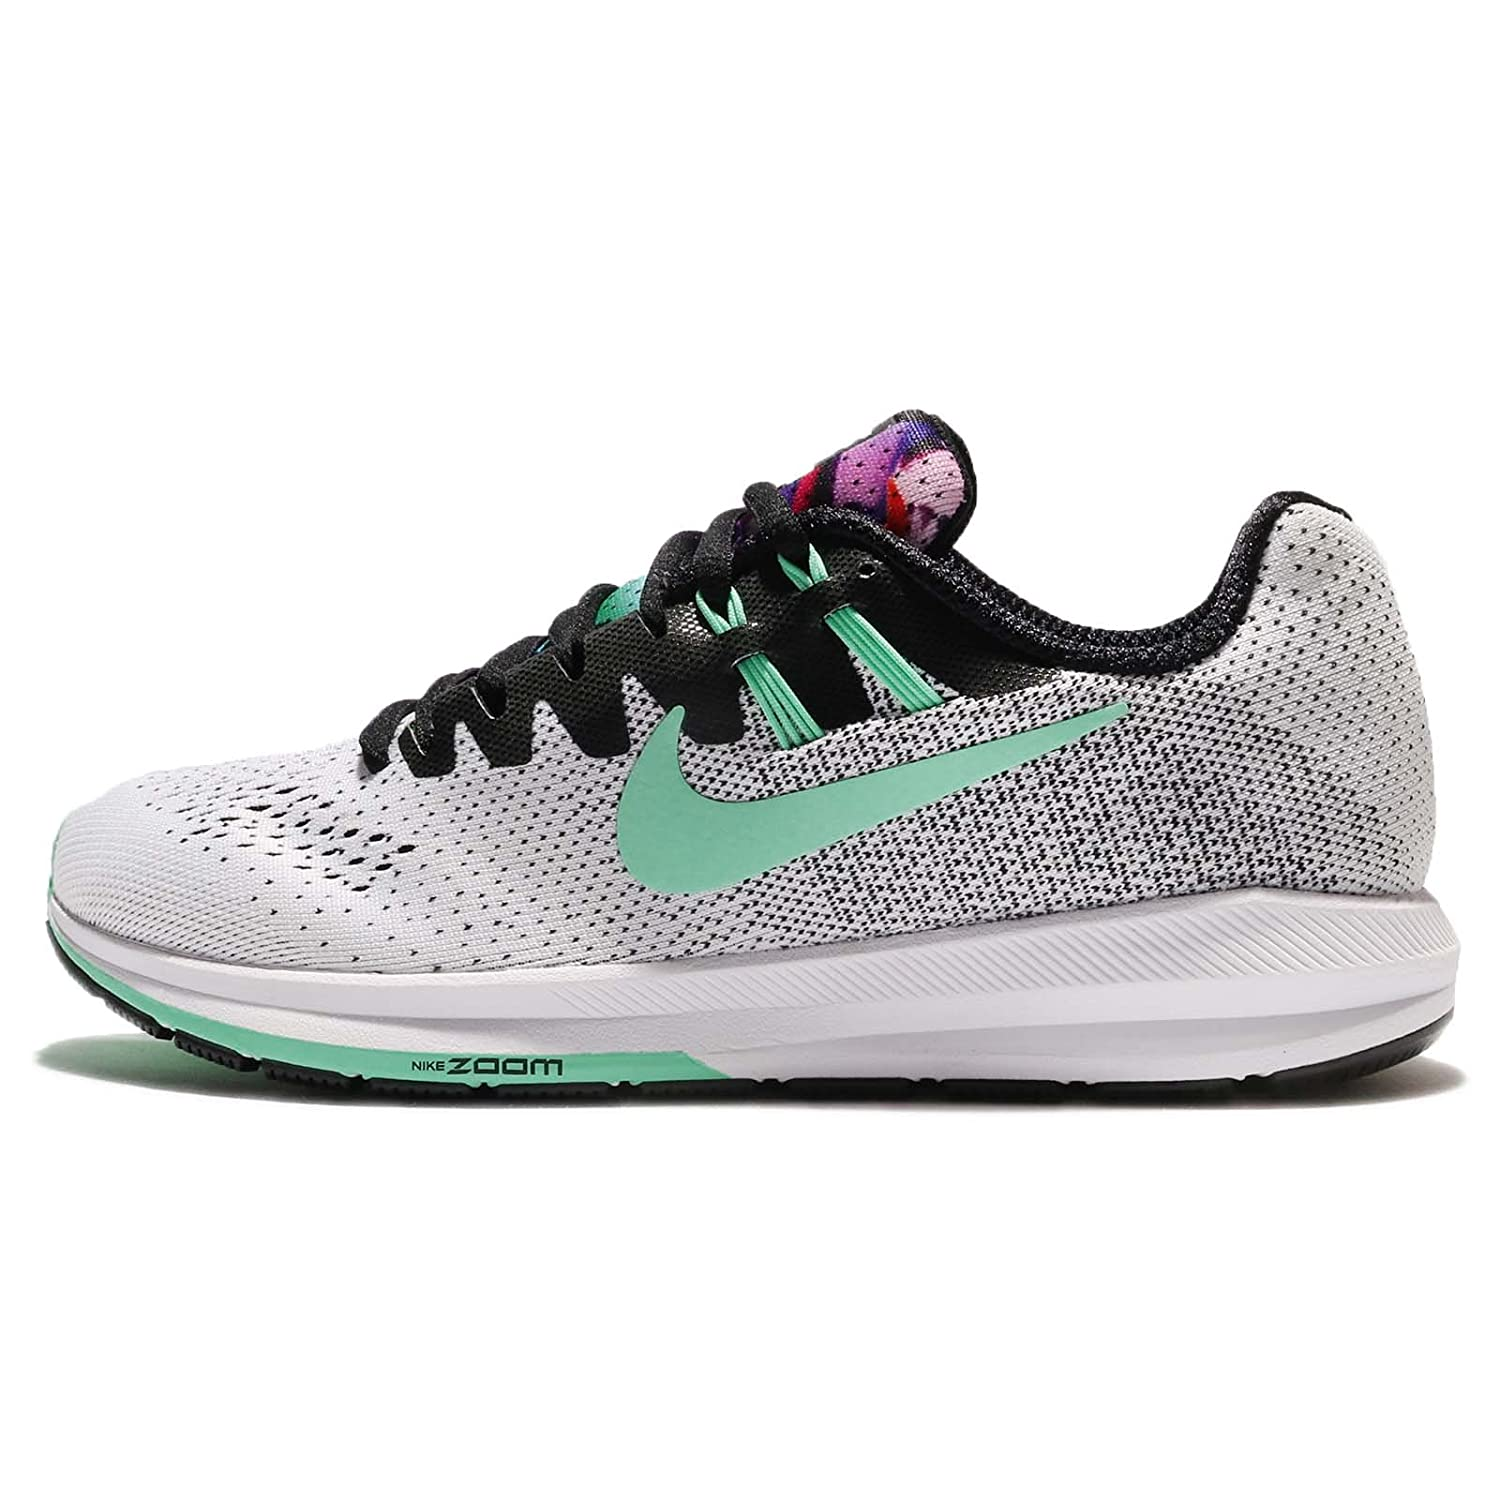 Nike Air Zoom Structure 20 Solstice Unidad Zapatos Mujer